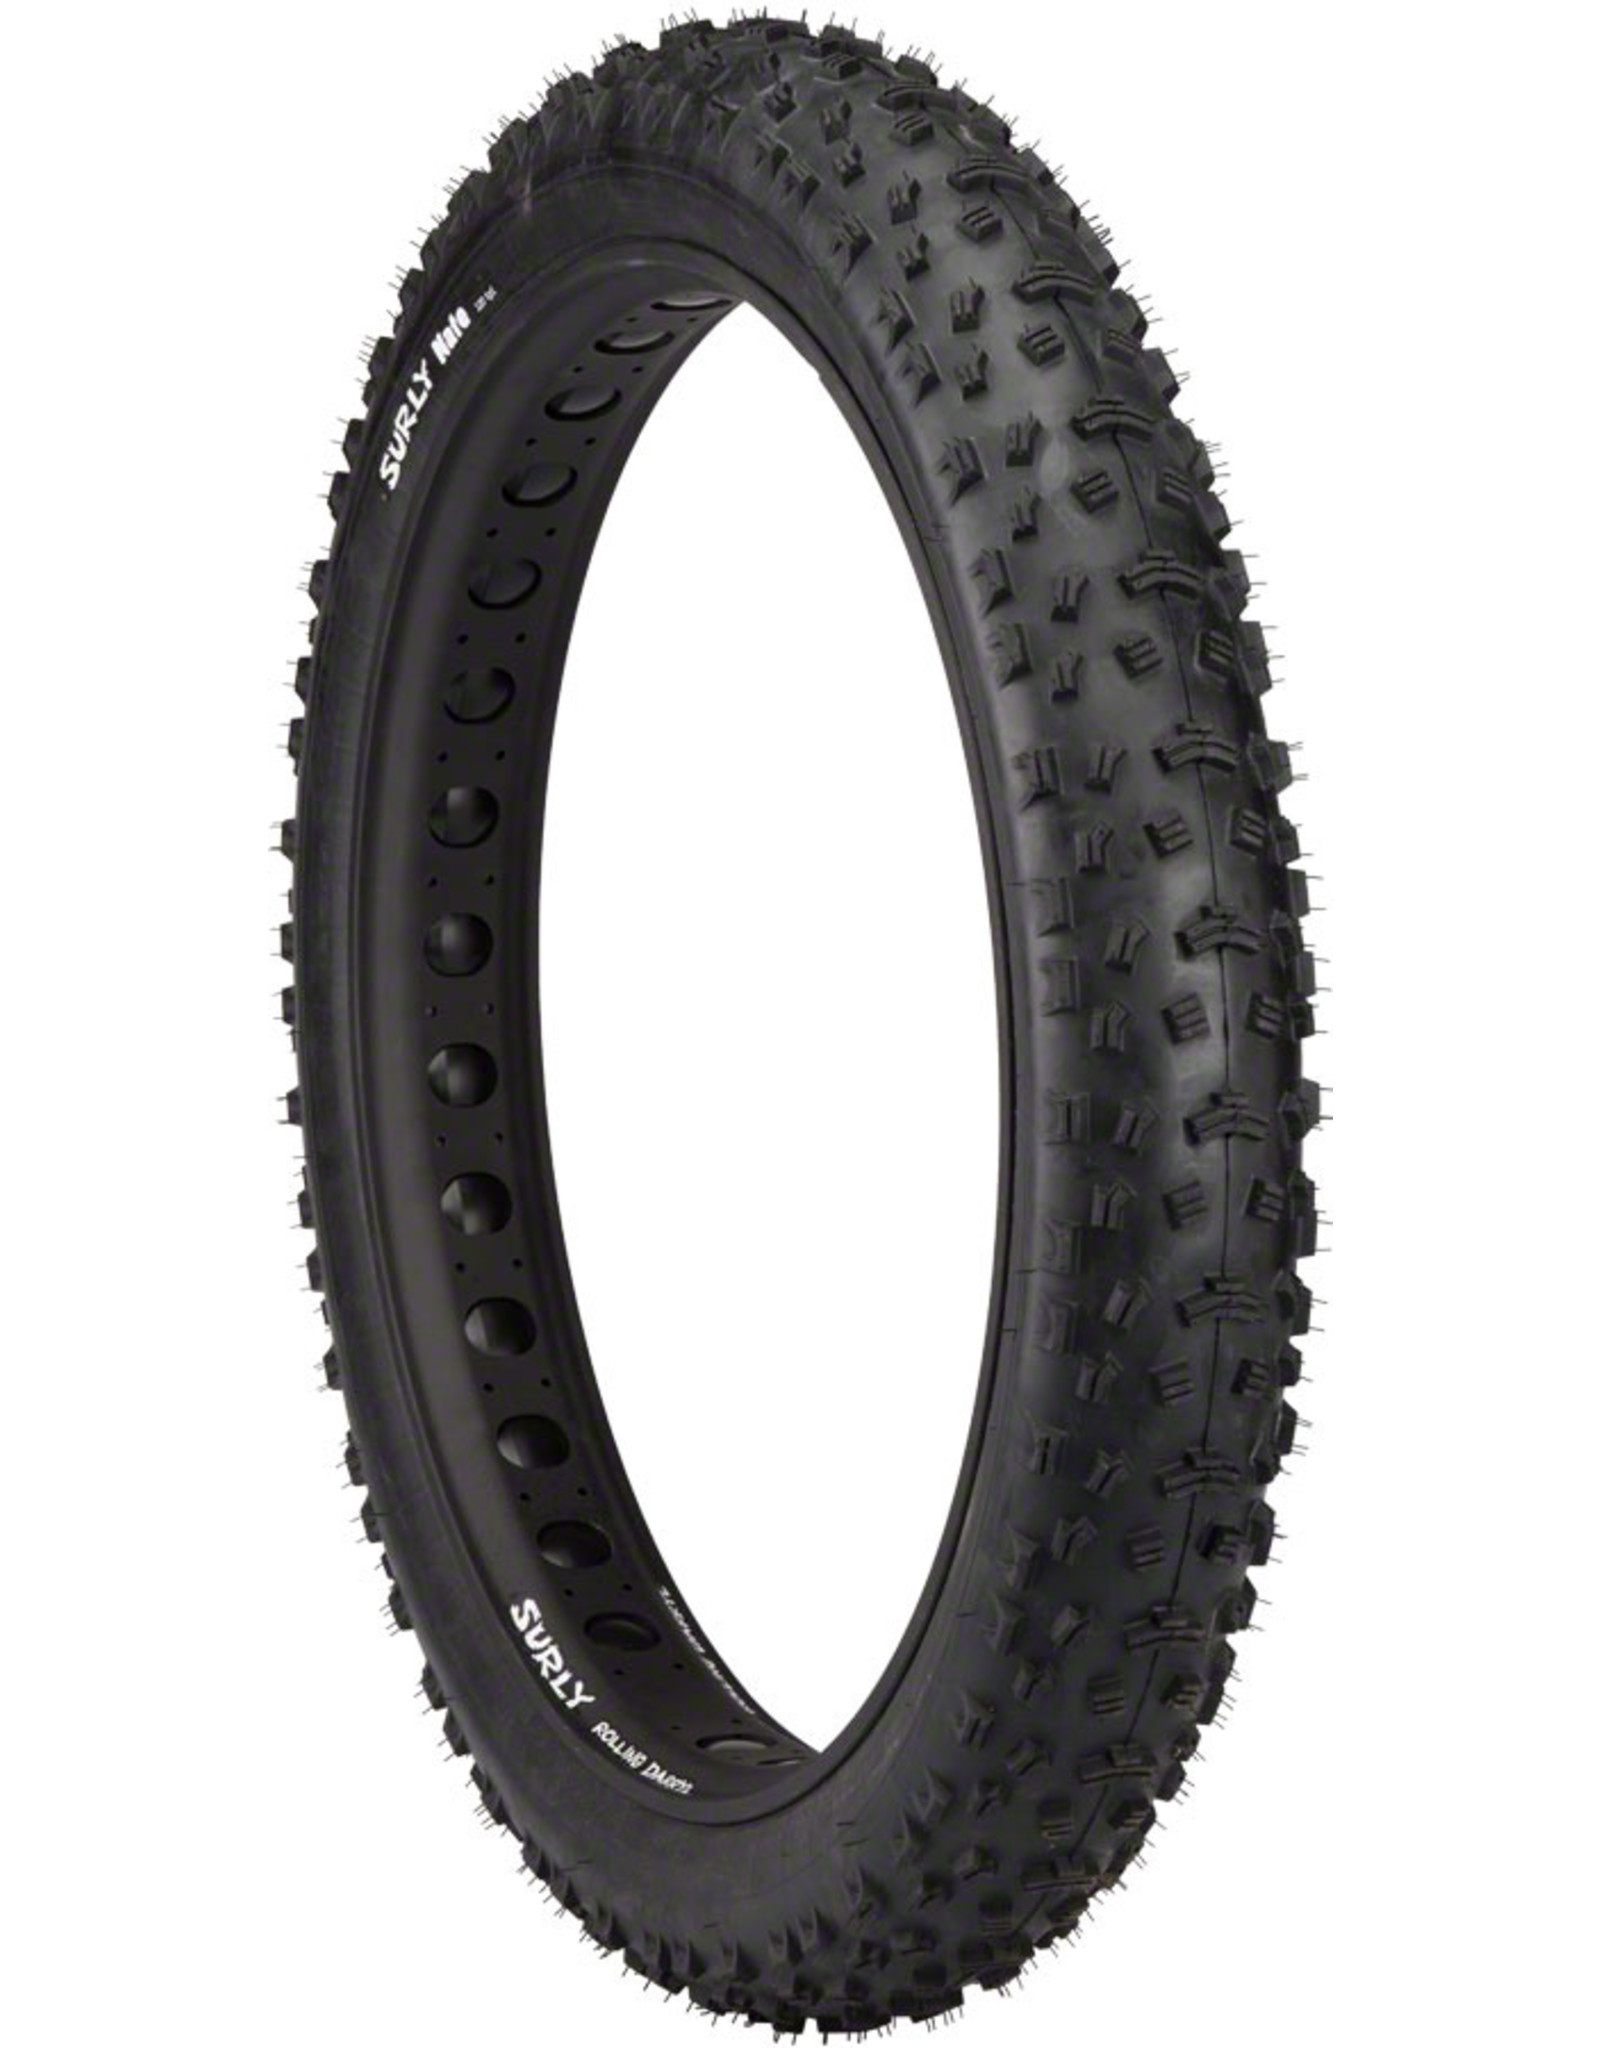 """Surly Surly Nate Tire 26 x 3.8"""" 120tpi Folding Ultralight Casing"""